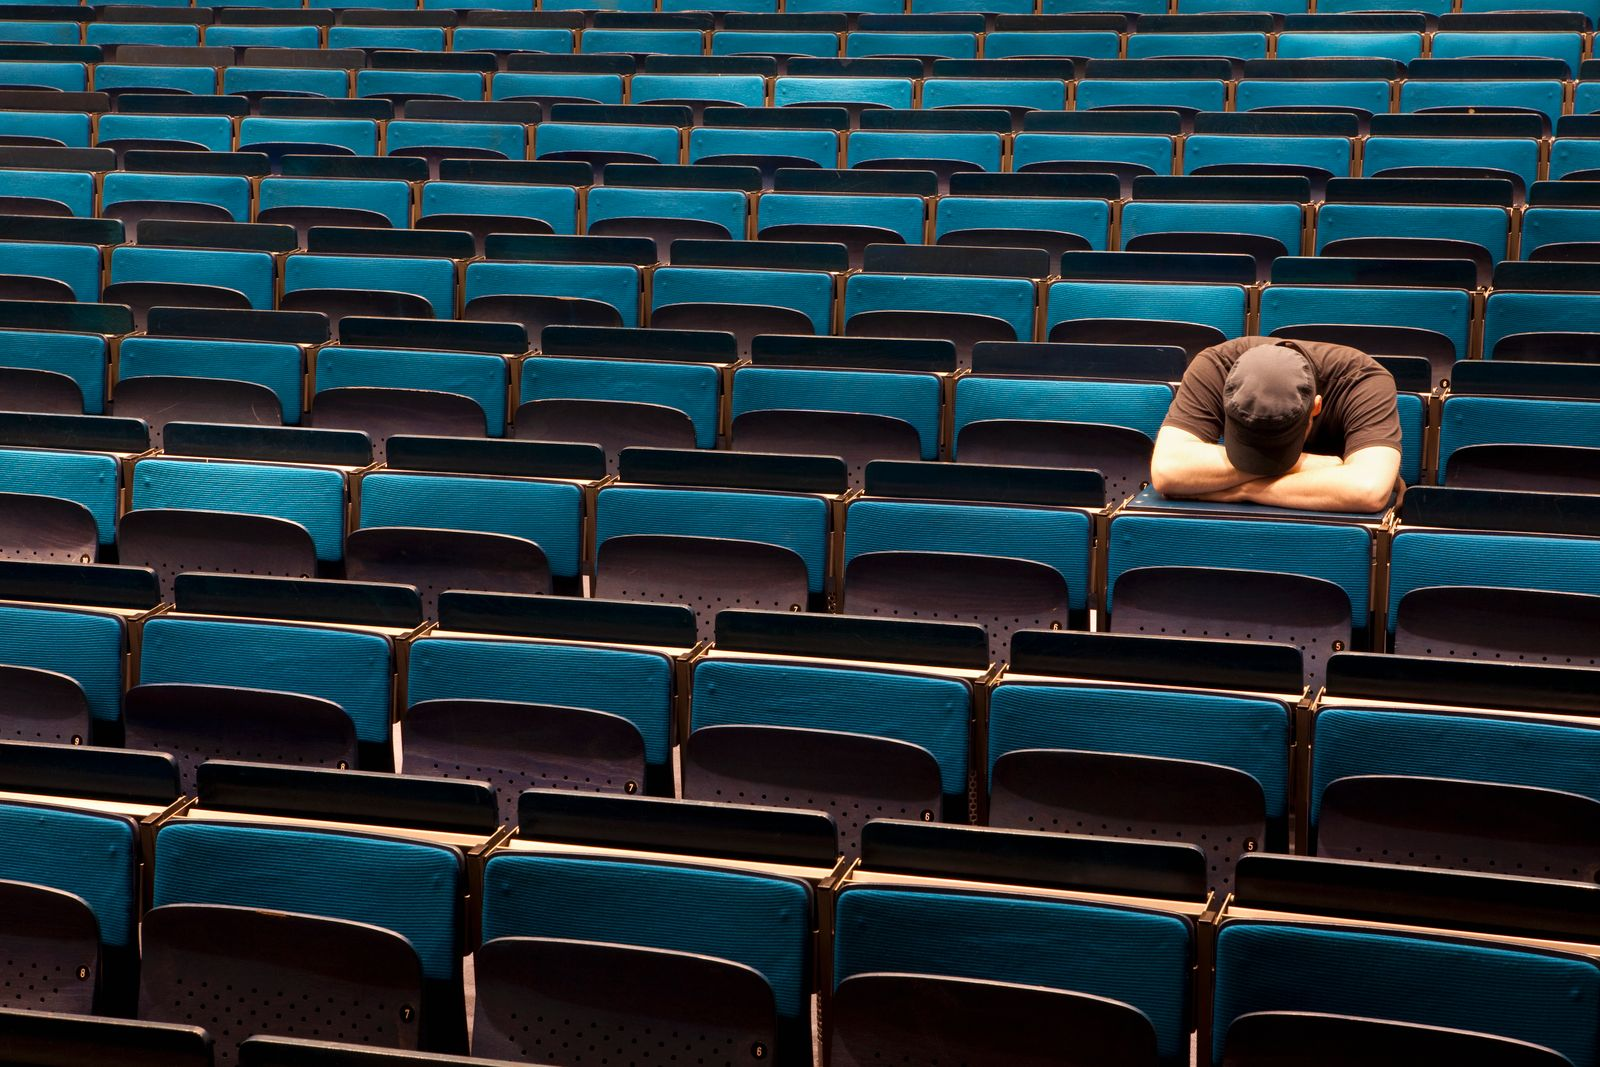 A man sitting in an auditorium with his head resting in his arms